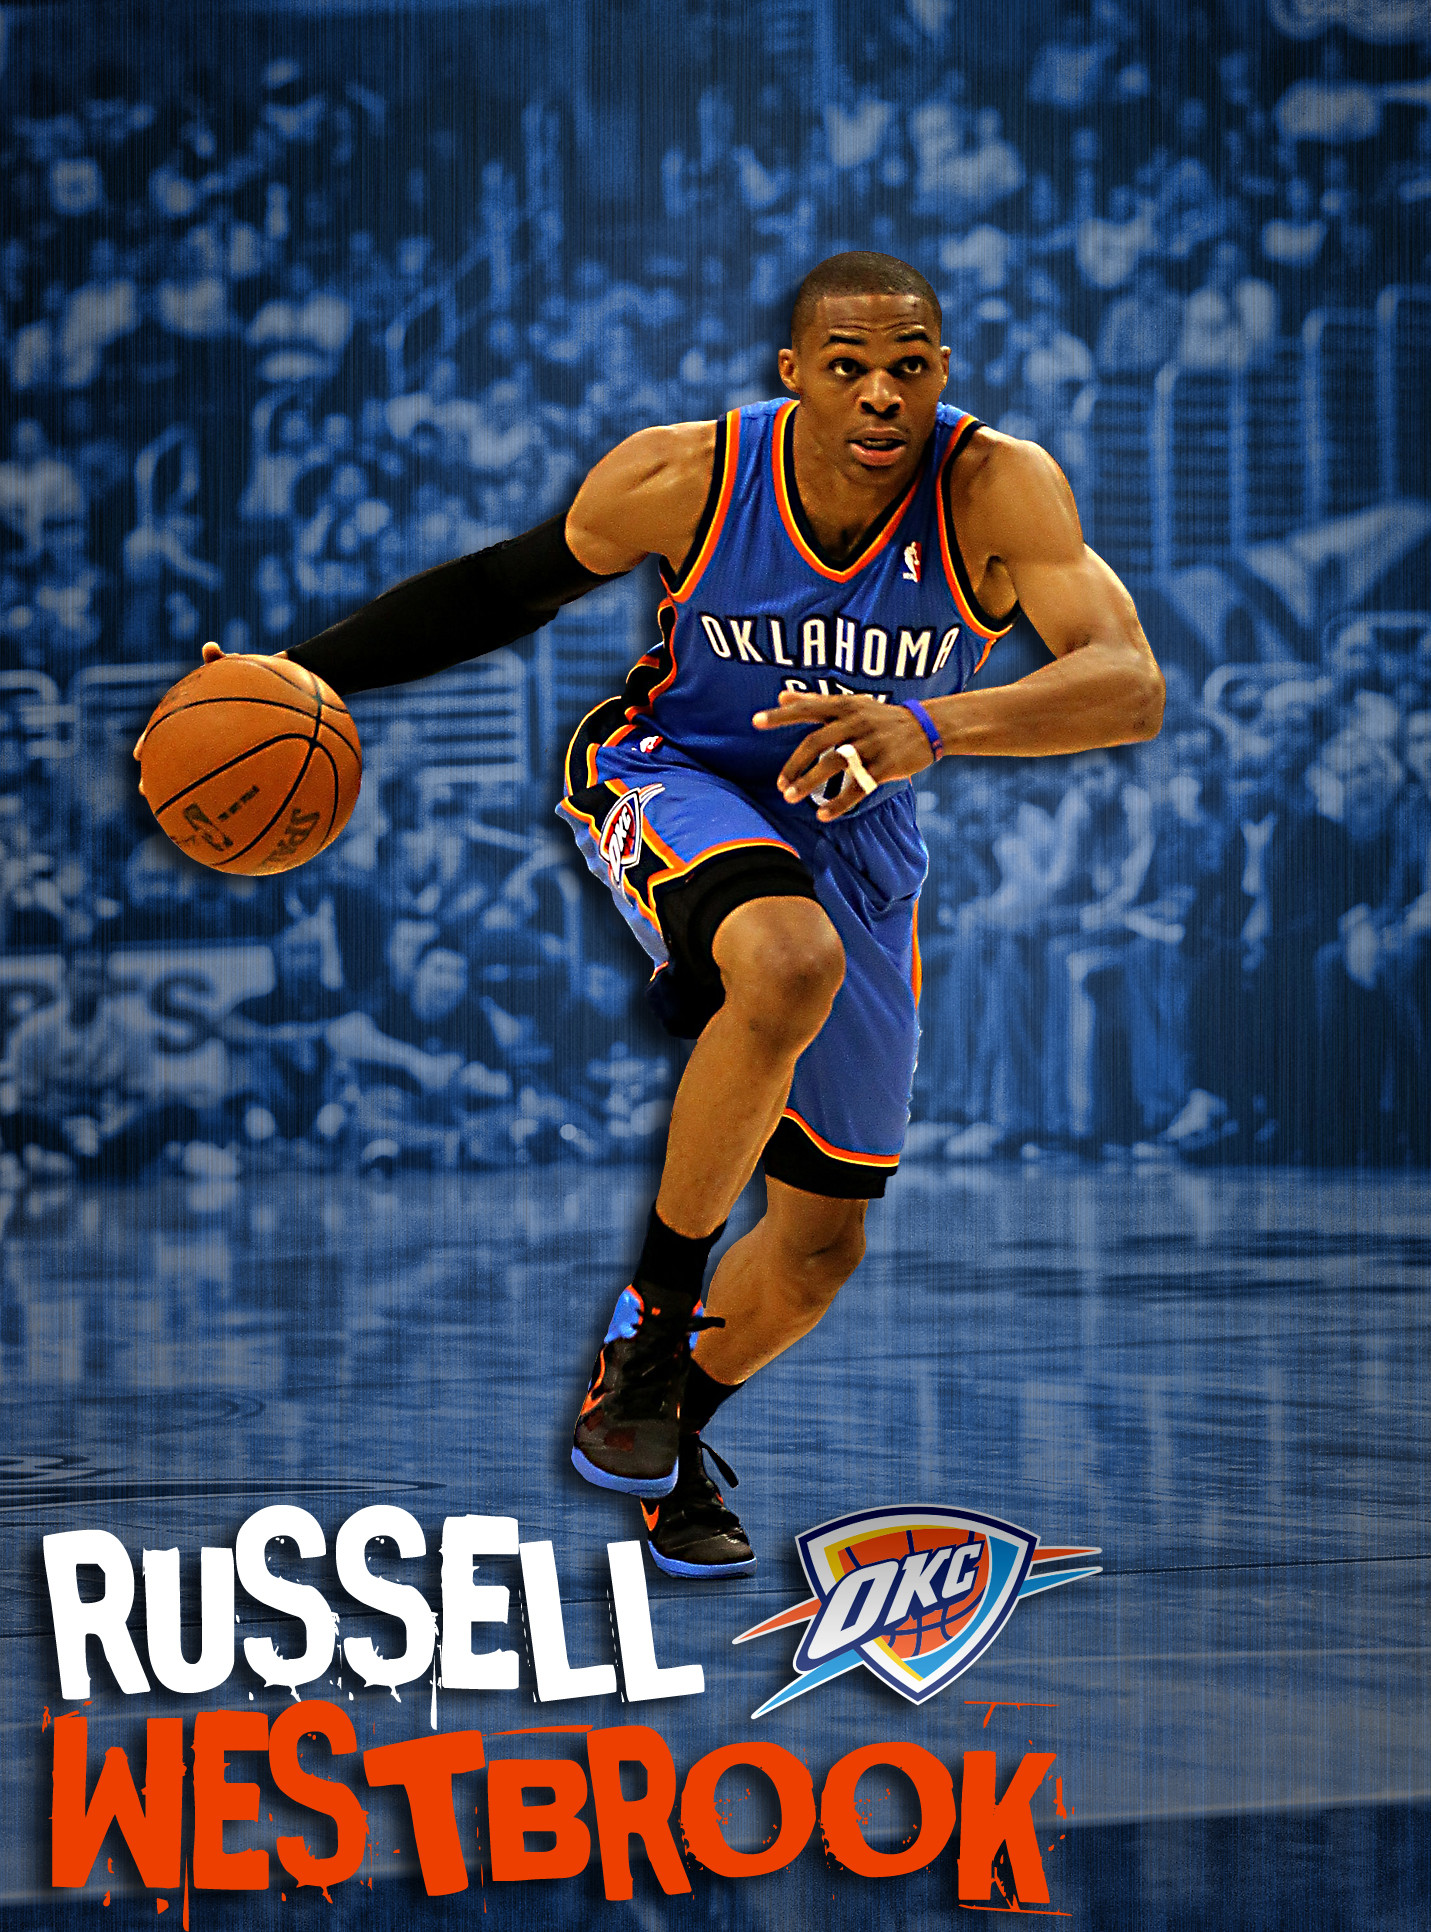 russell westbrook wallpaper iphone 68 images